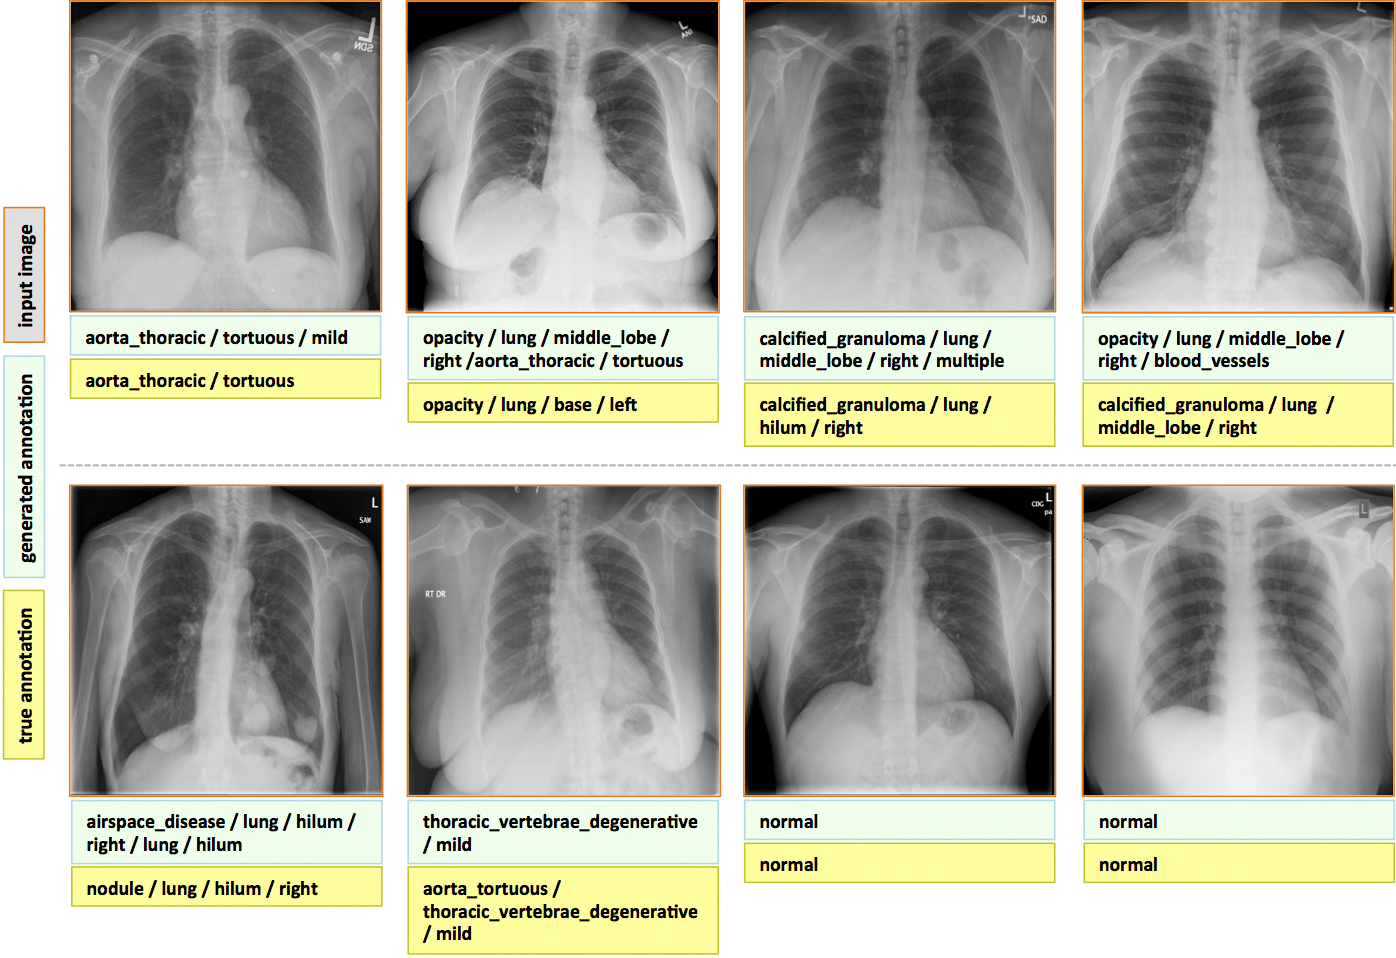 Chest X-ray annotations